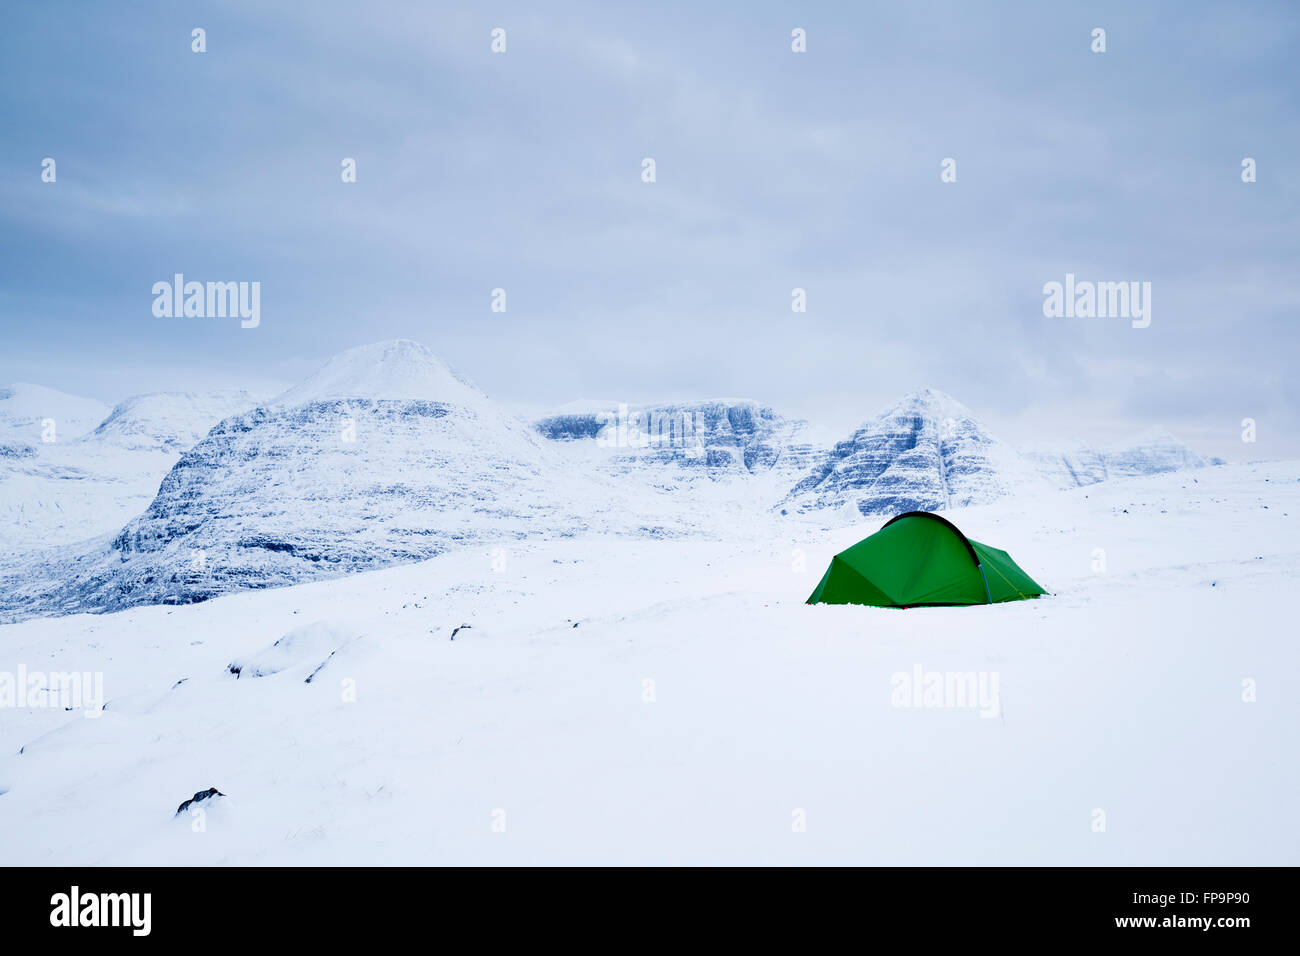 A tent pitched in the snow of the Torridon hills in winter with Beinn Eighe as backdrop, Scotland - Stock Image